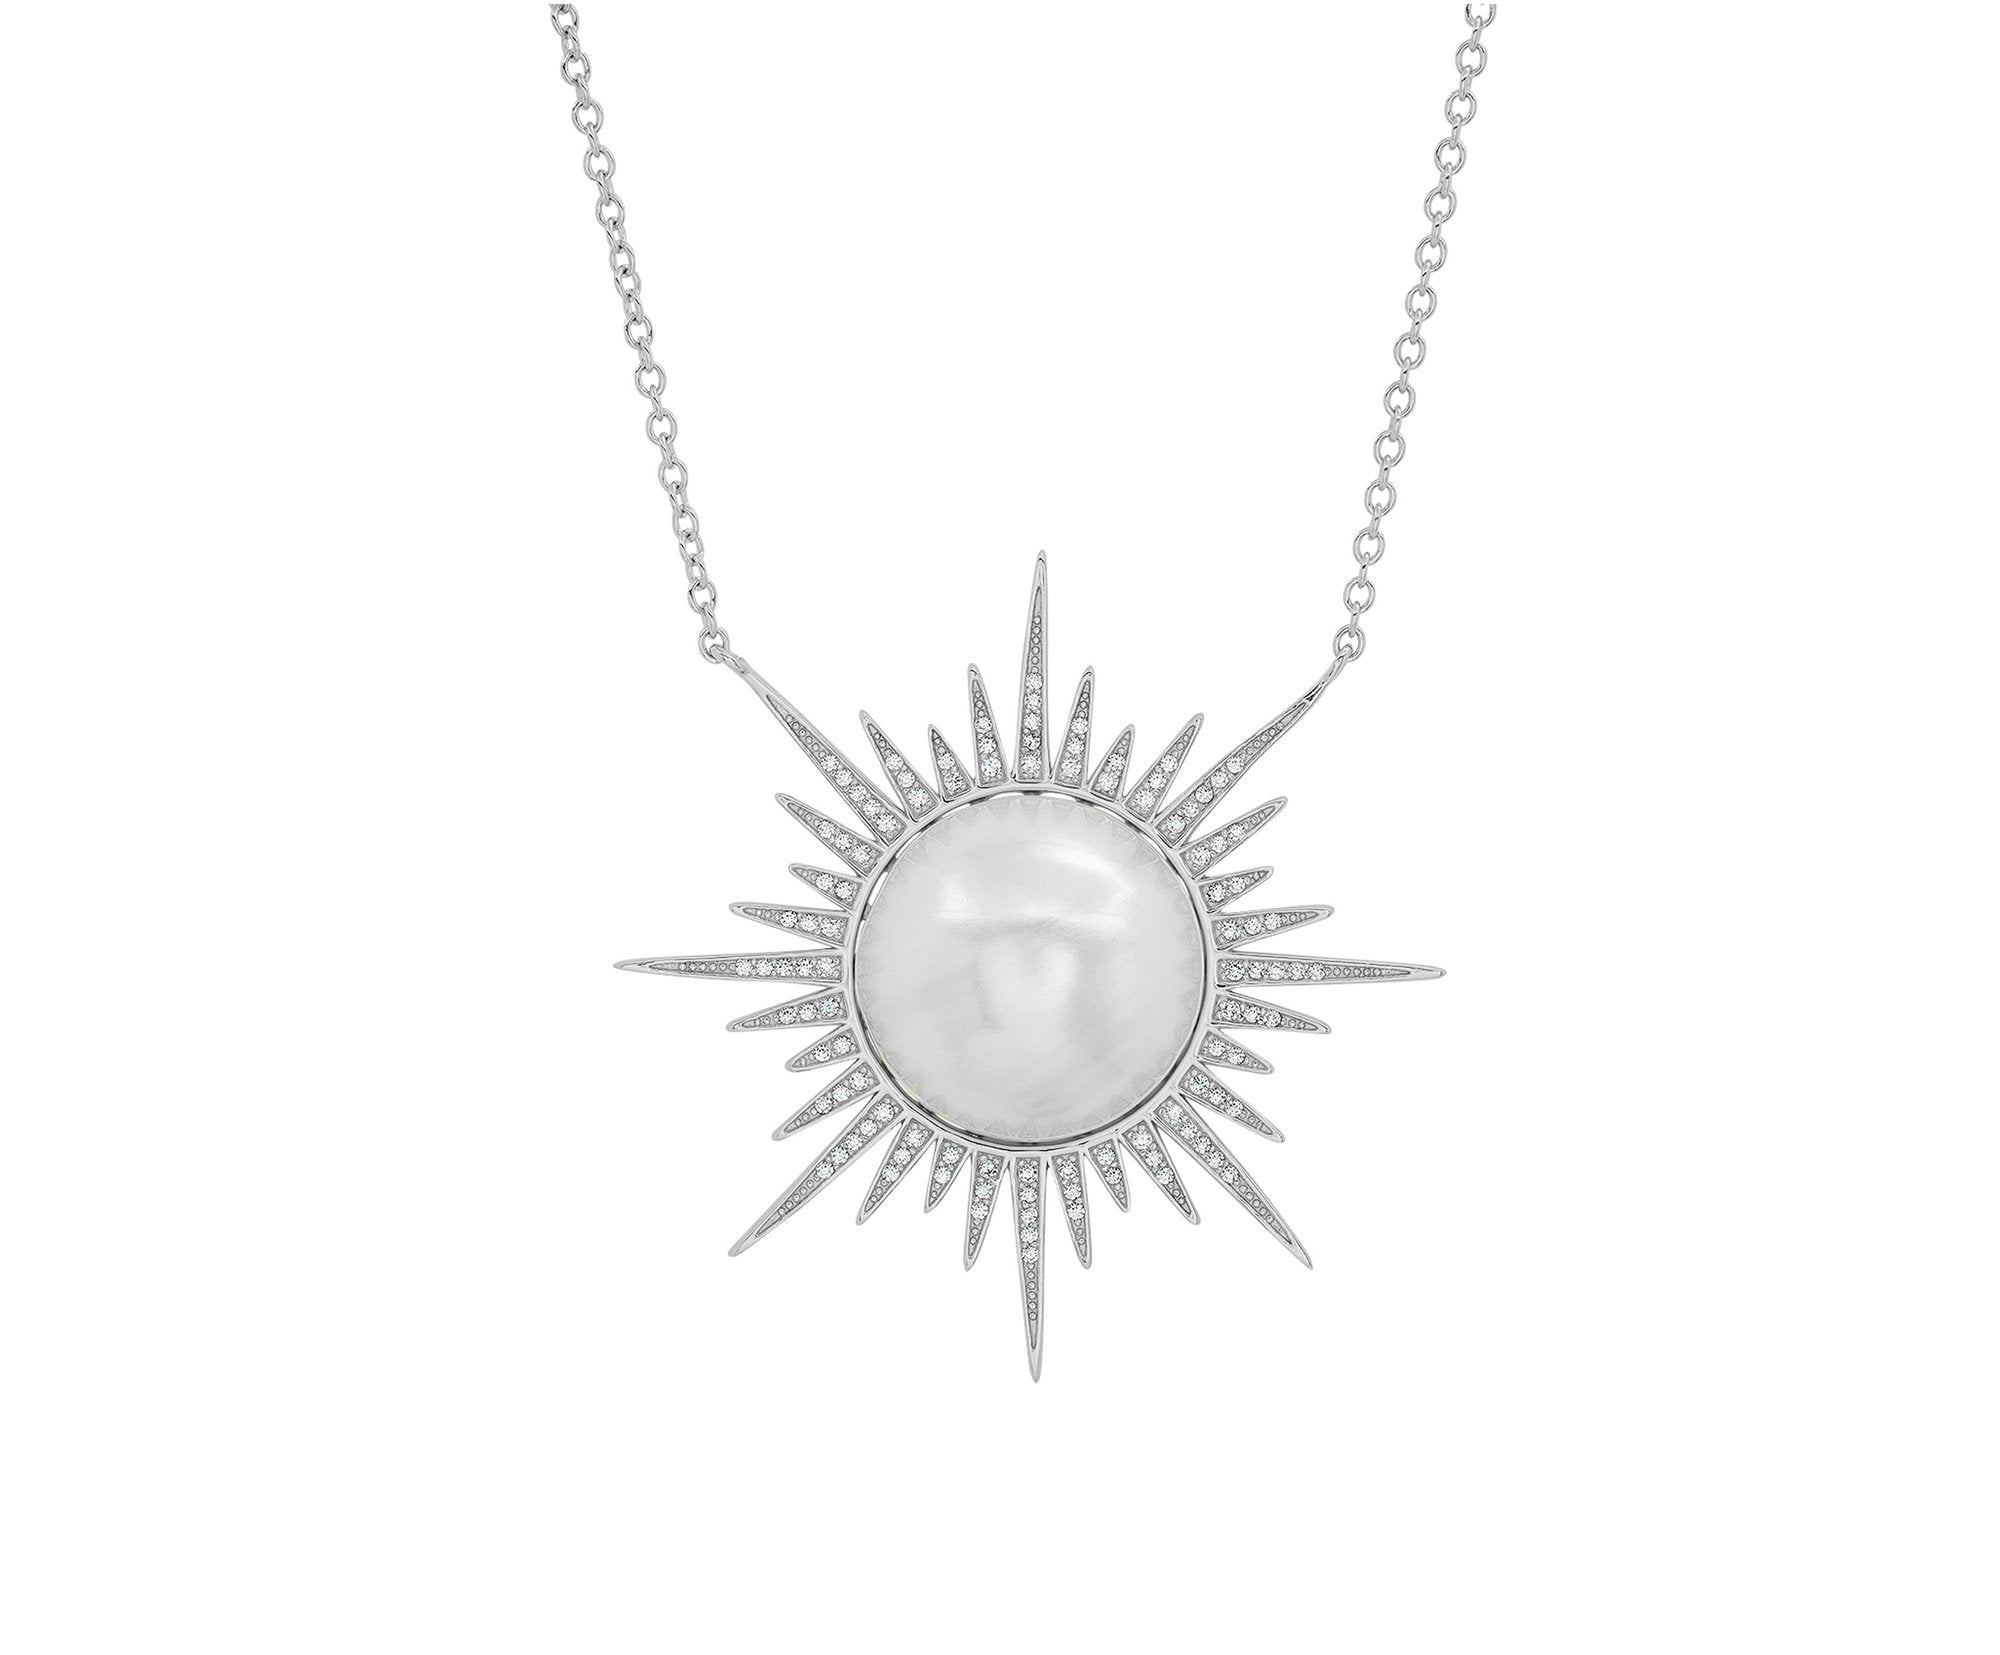 Sunburst Necklace in 18k White Gold